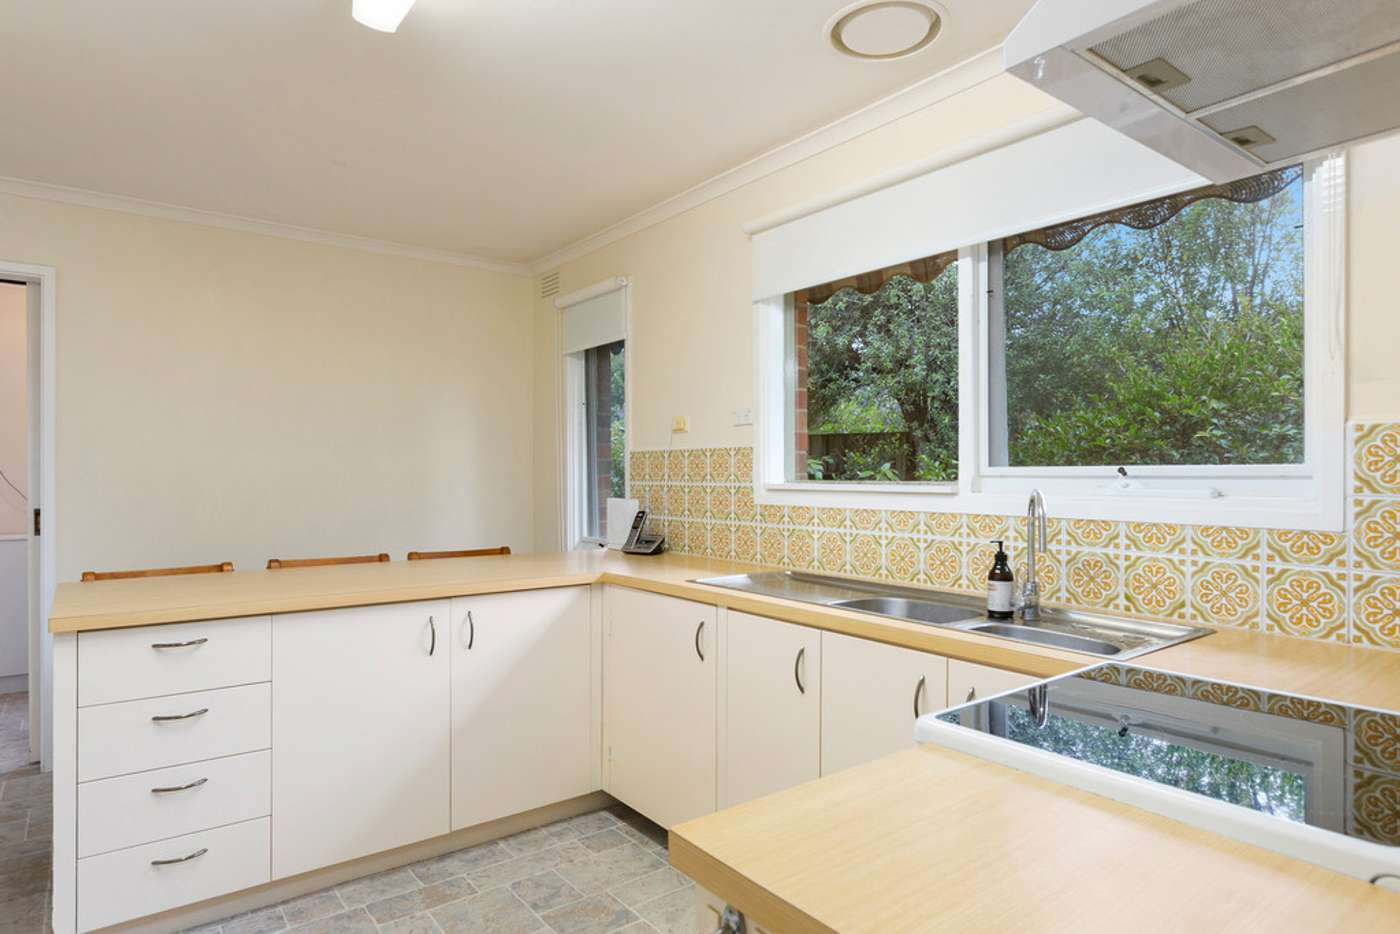 Sixth view of Homely house listing, 2/26 Dava Drive, Mornington VIC 3931